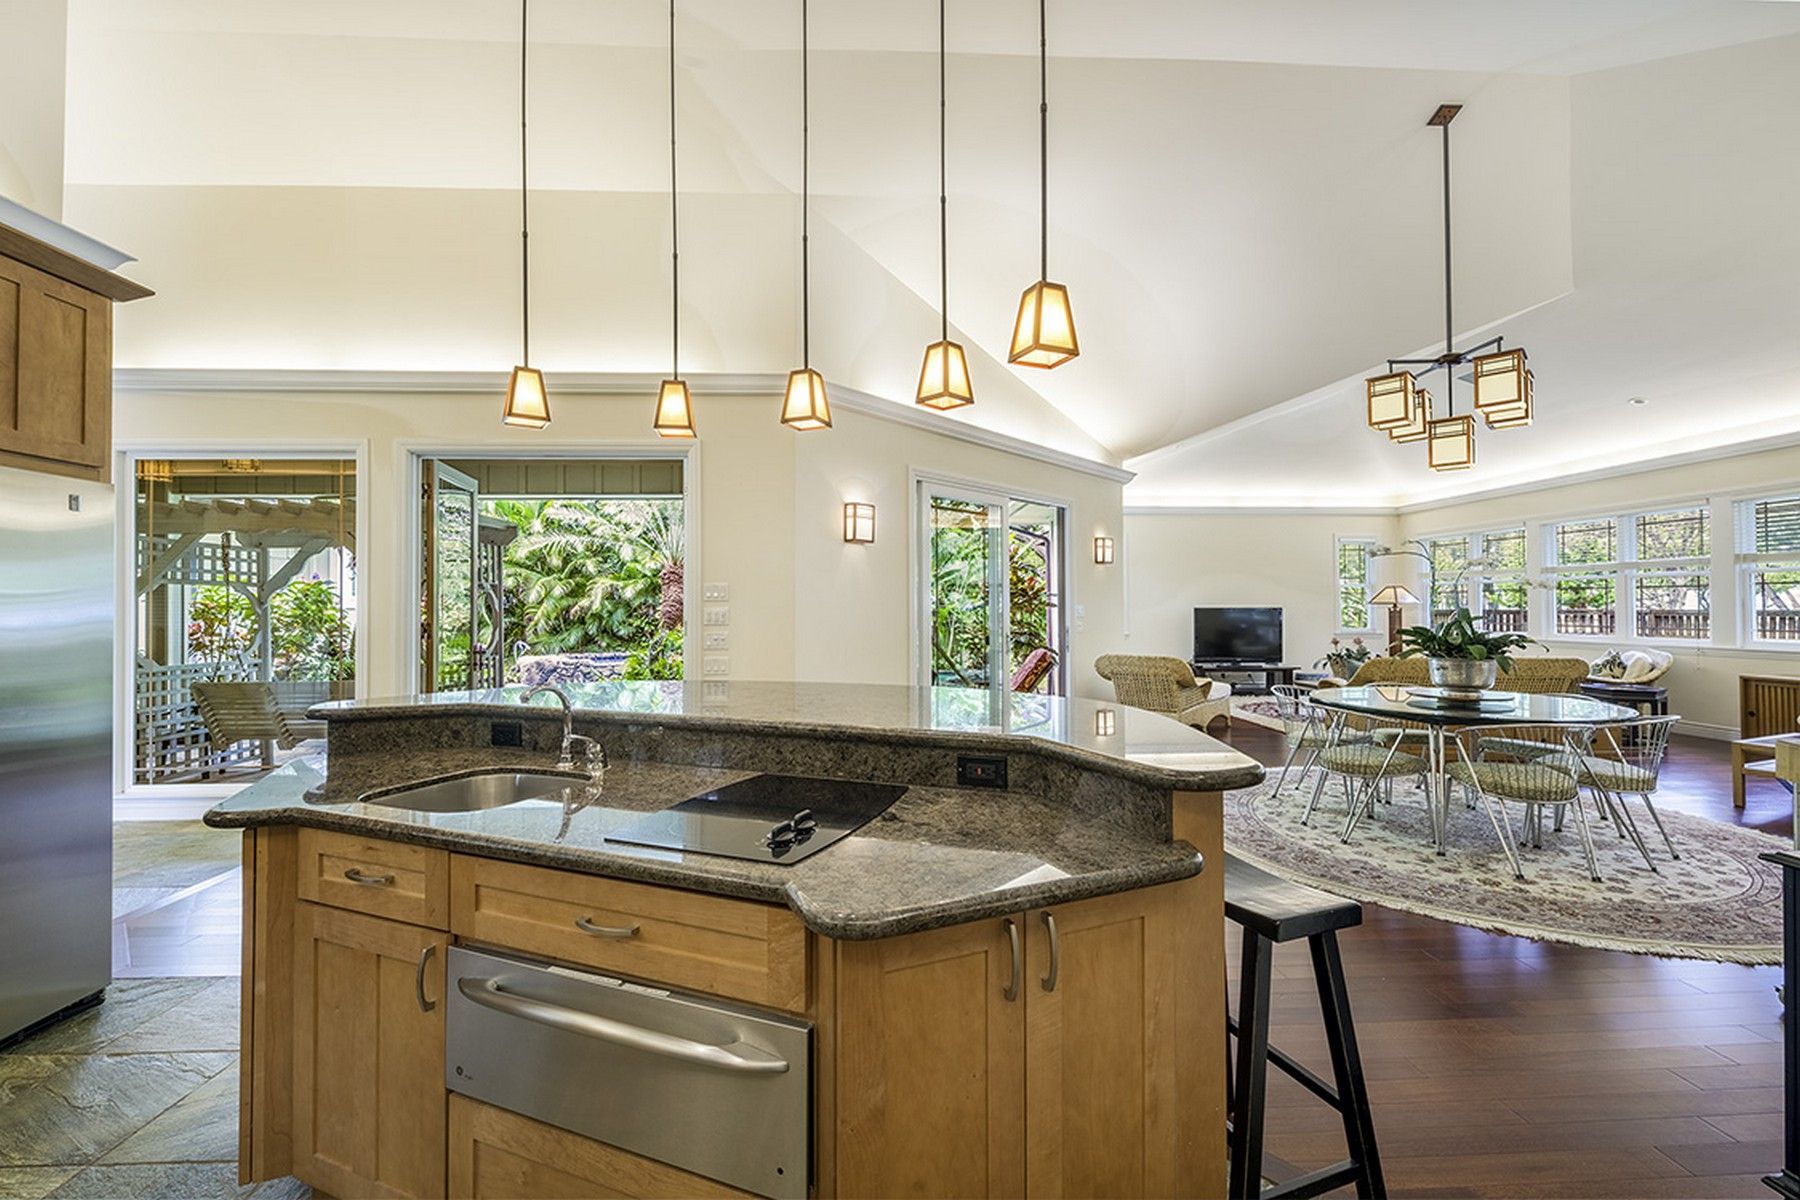 Carvill Sothebys International Realty ~ This new listing in Kailua, Oahu is quite amazing!  521 Kawailoa Rd.